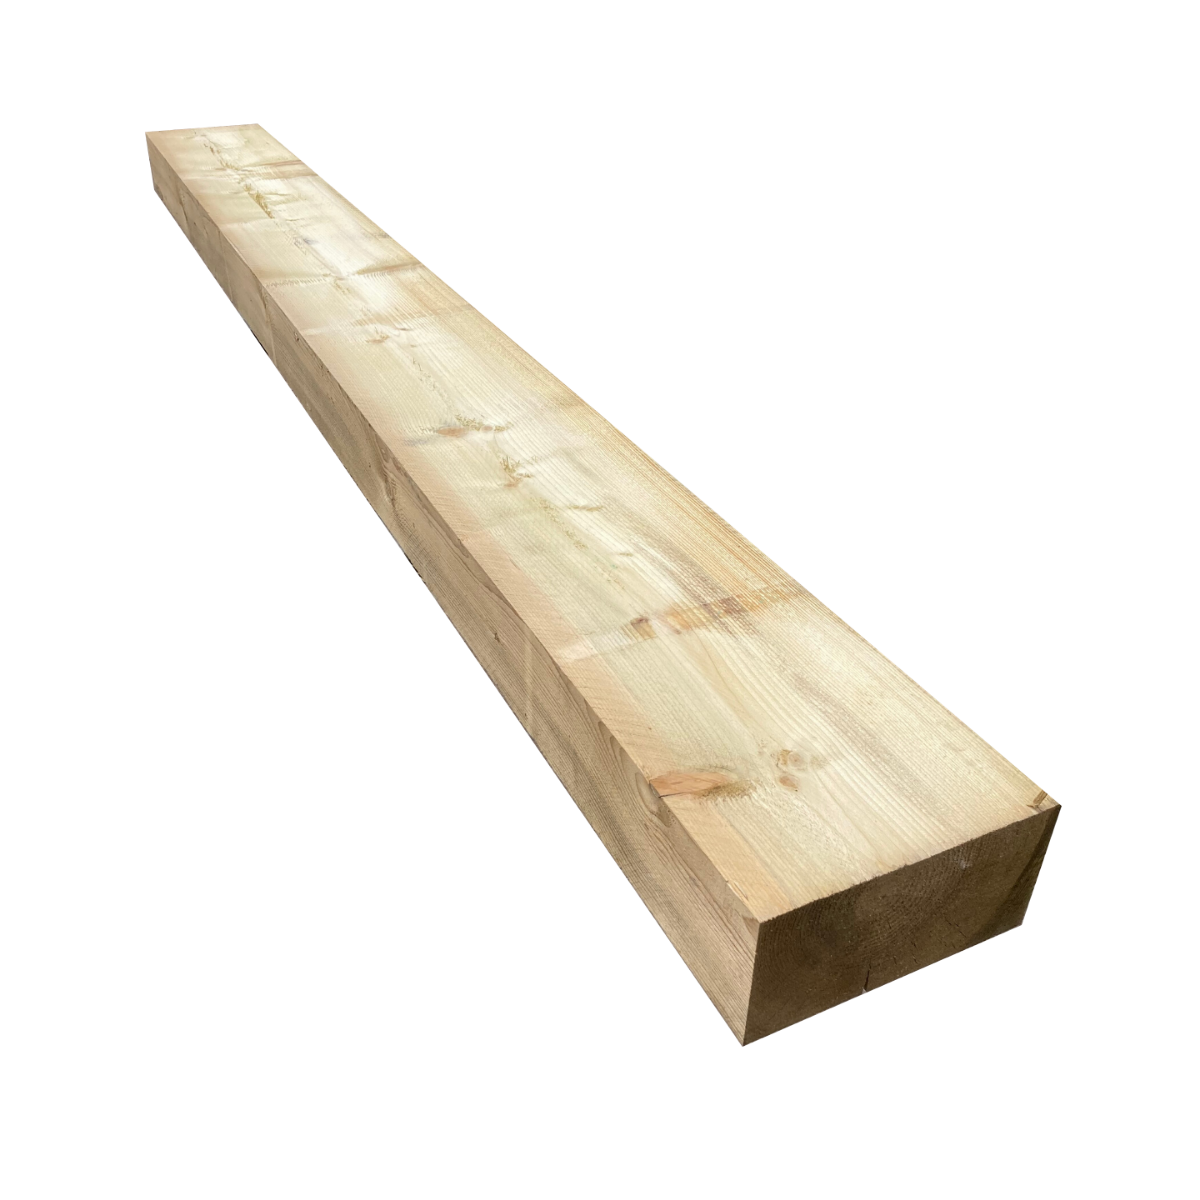 2.4m x 250mm x 125mm jumbo railway sleeper